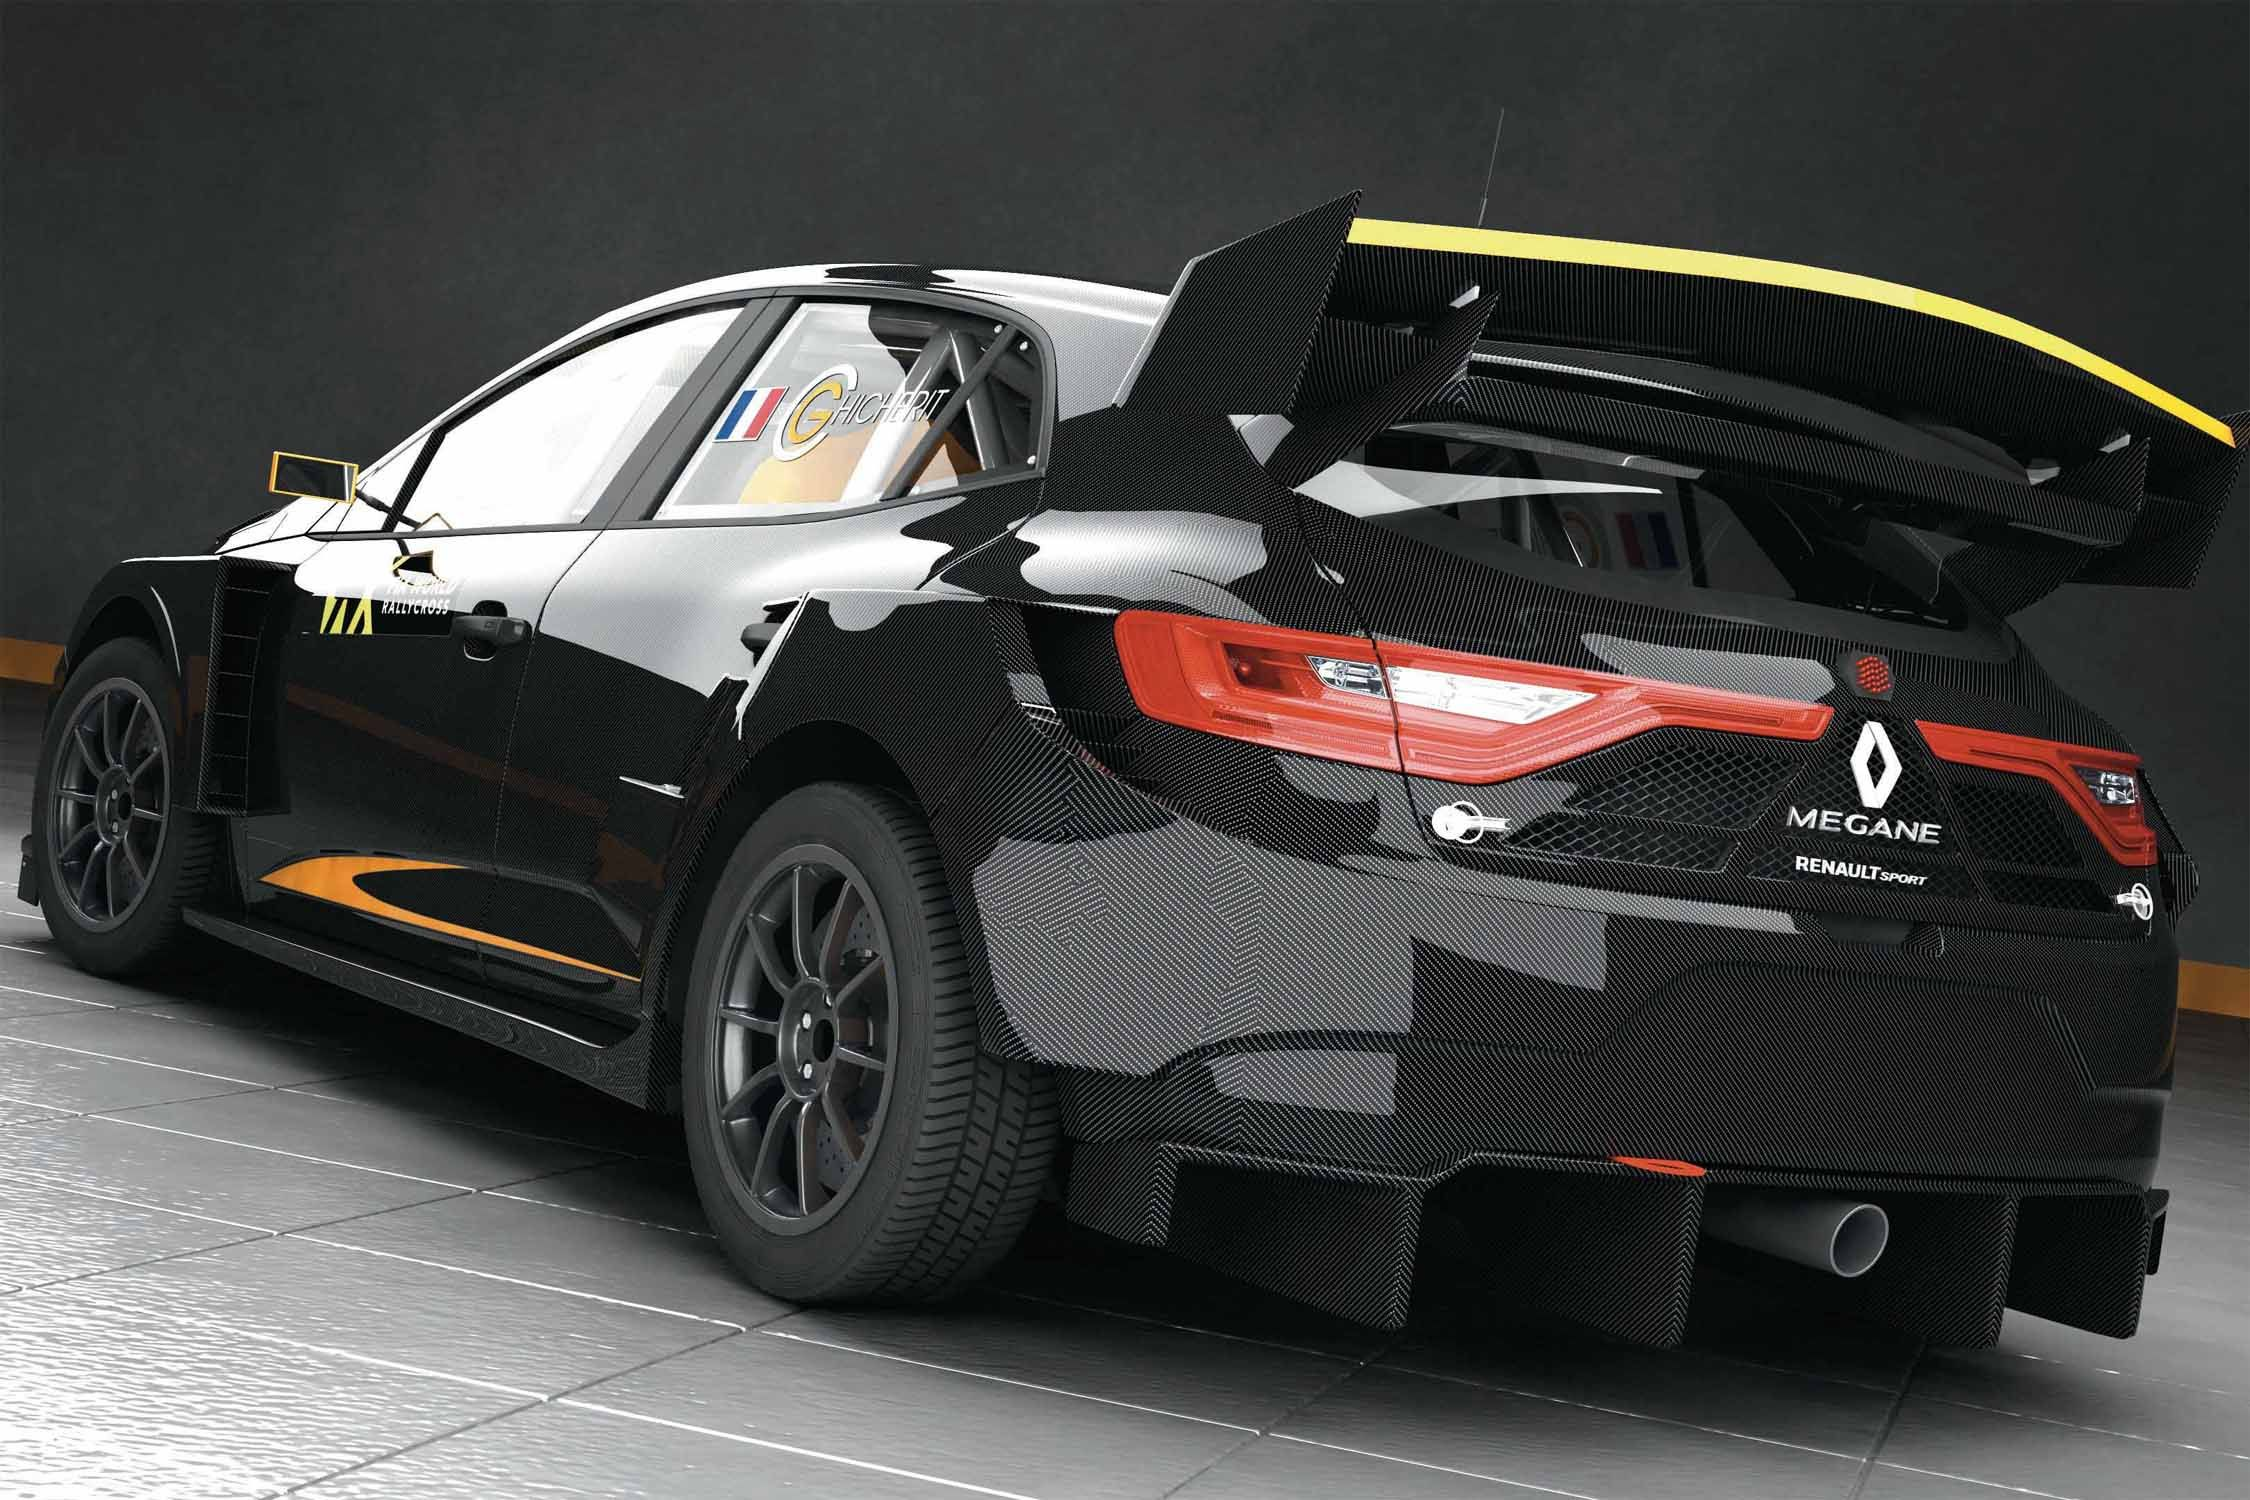 la renault megane arrivera en world rx en 2018 actualit automobile motorlegend. Black Bedroom Furniture Sets. Home Design Ideas